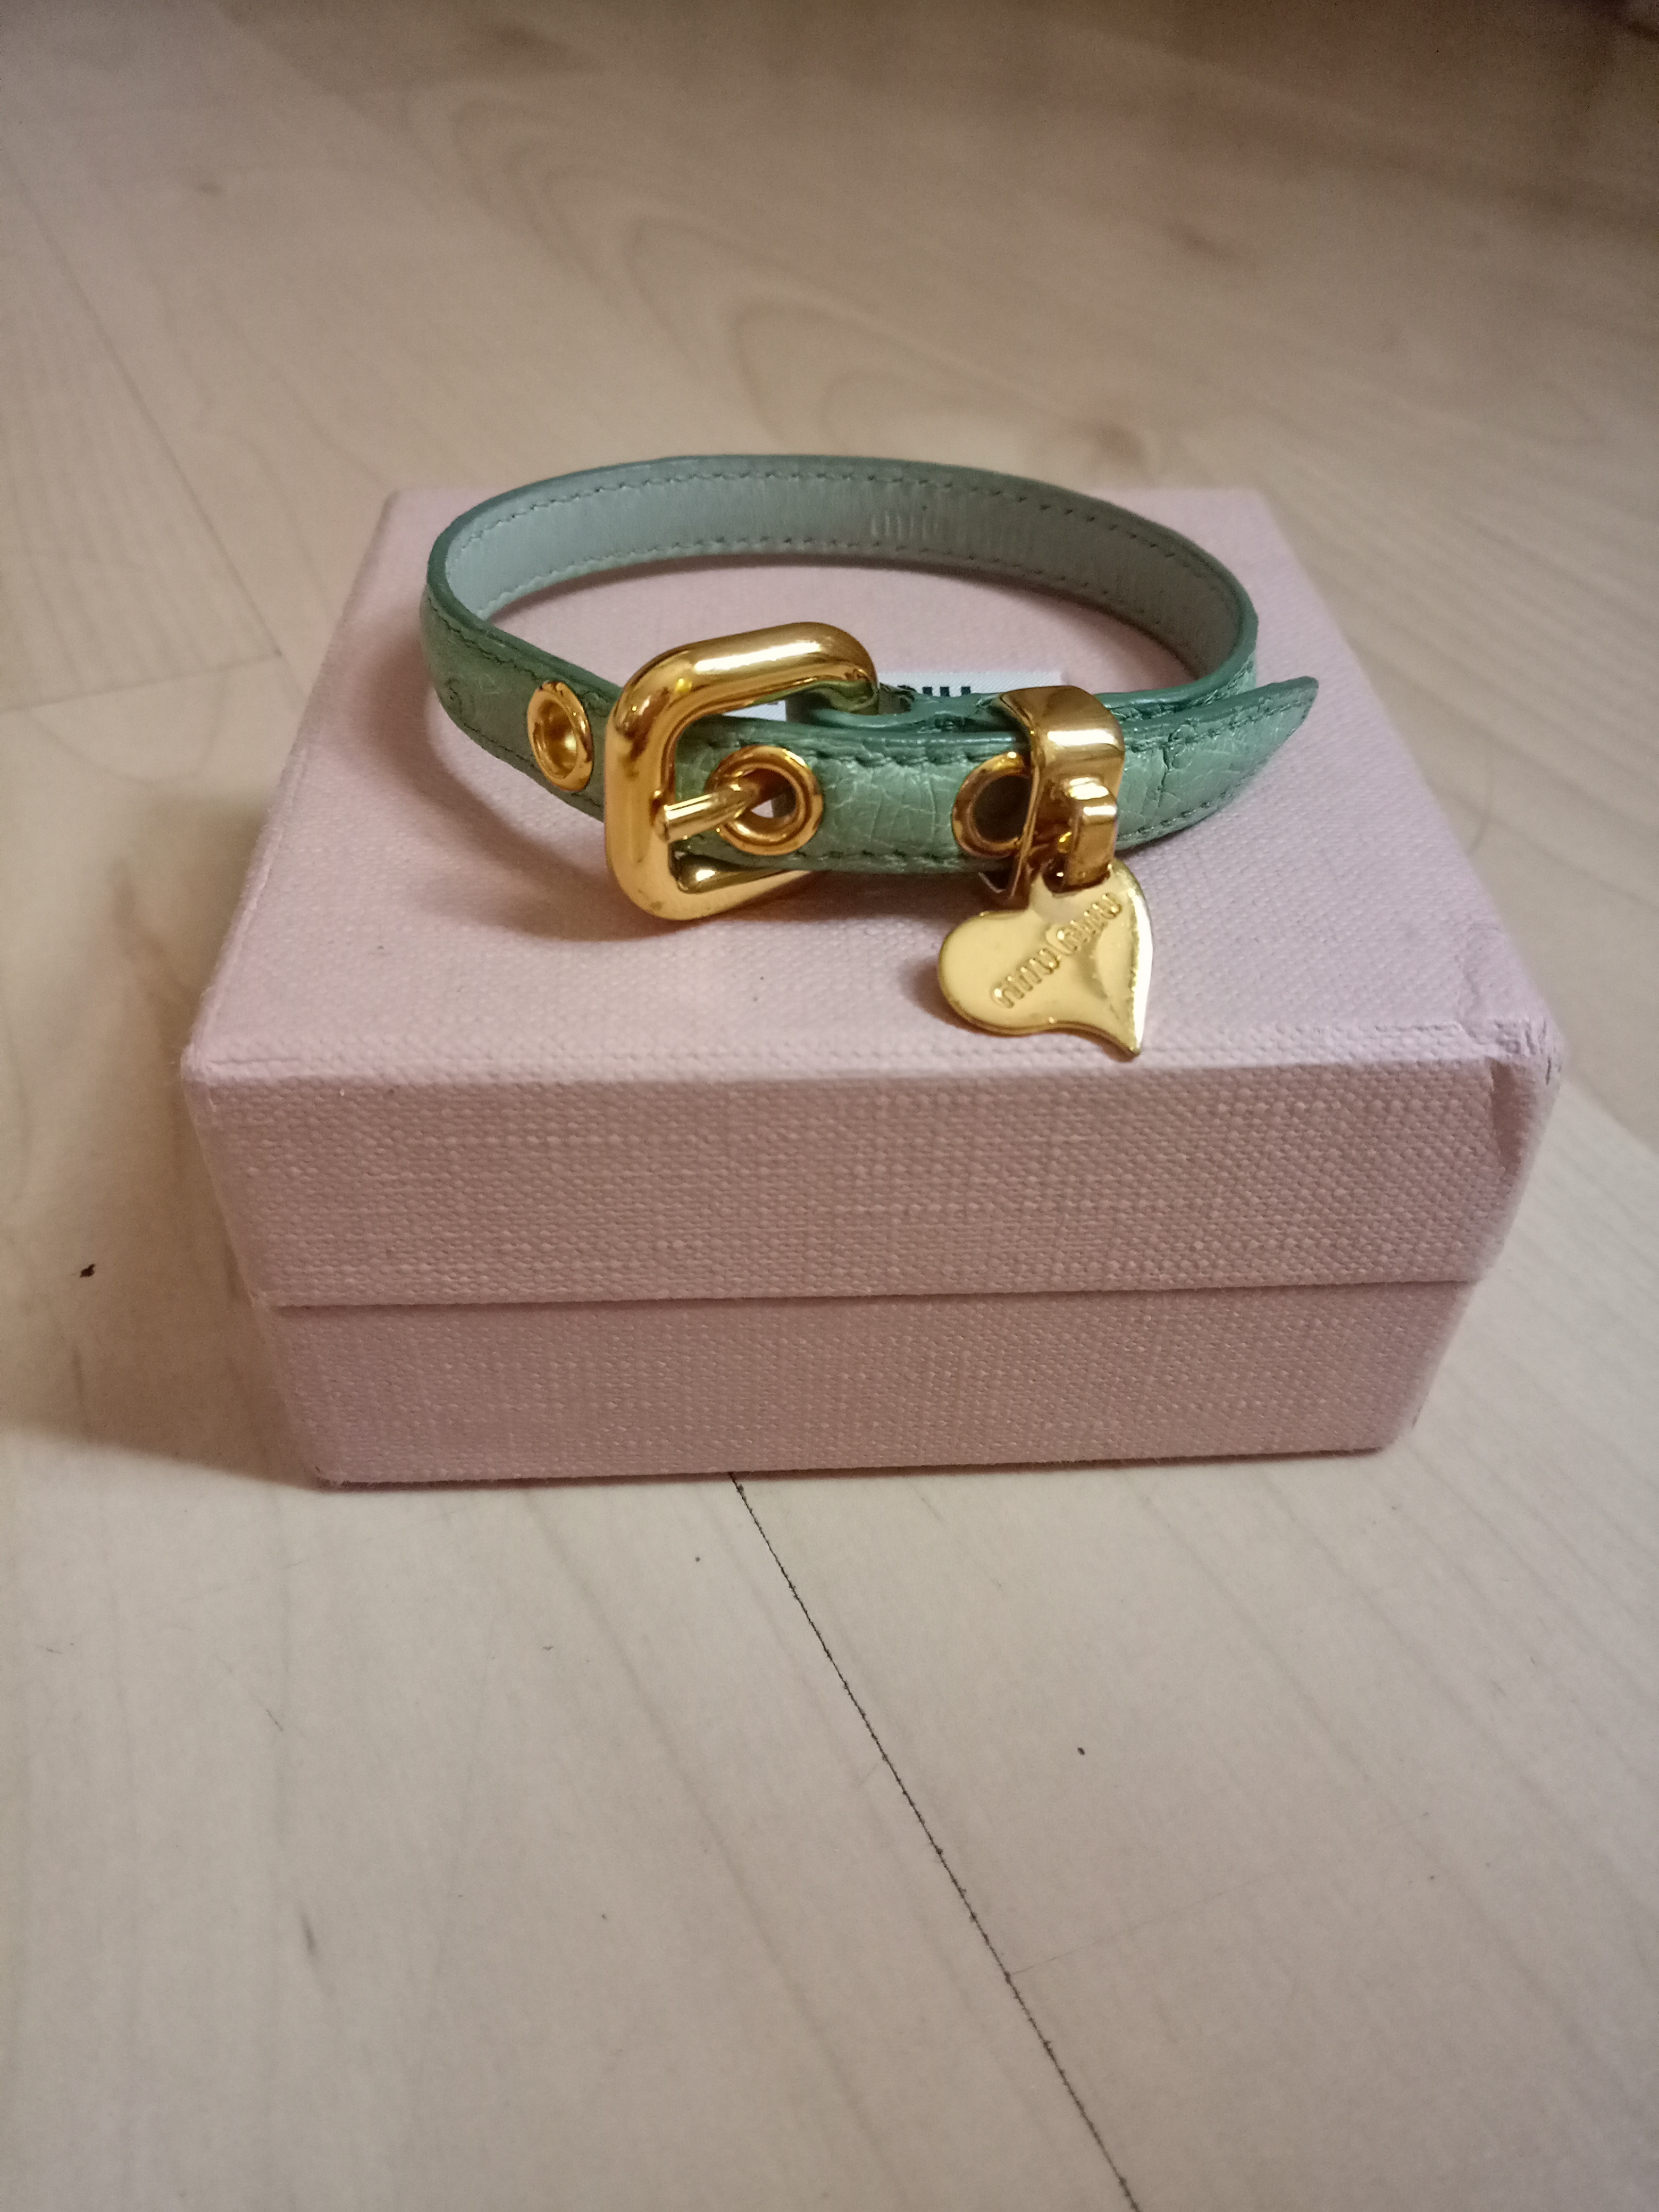 ef539e47b339 Miu Miu heart charm leather bracelet Condition   8.5 10 come with box and dust  bag Adjustable length serious buyer only and NOT for Fussy buyers 🙏  Selling ...